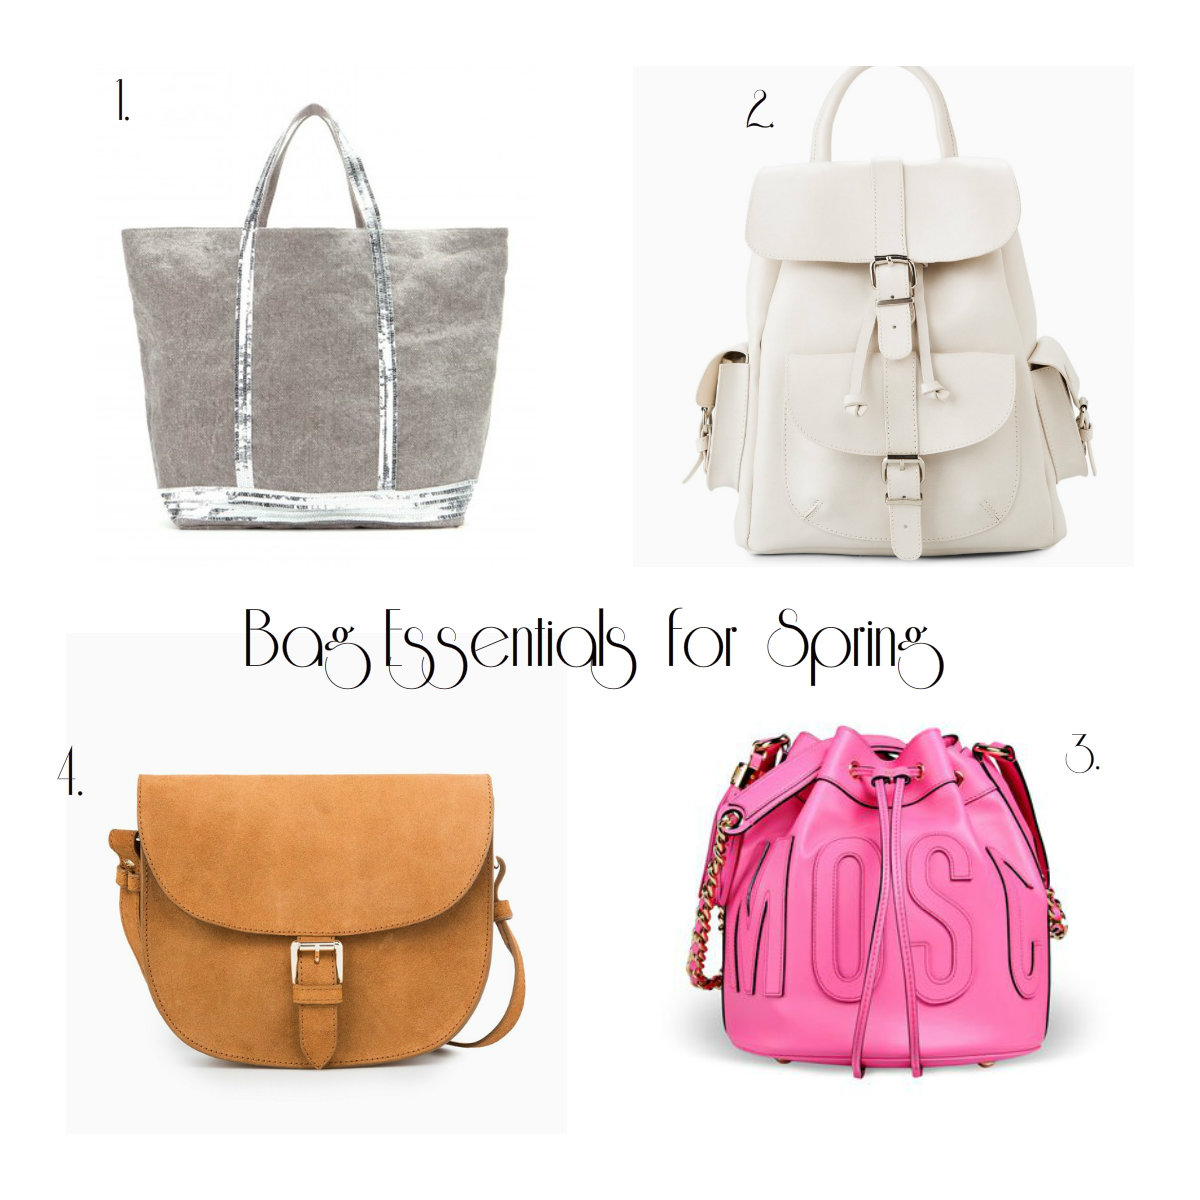 Fashion_Shopping_Bag_Essentials_Spring_Collage